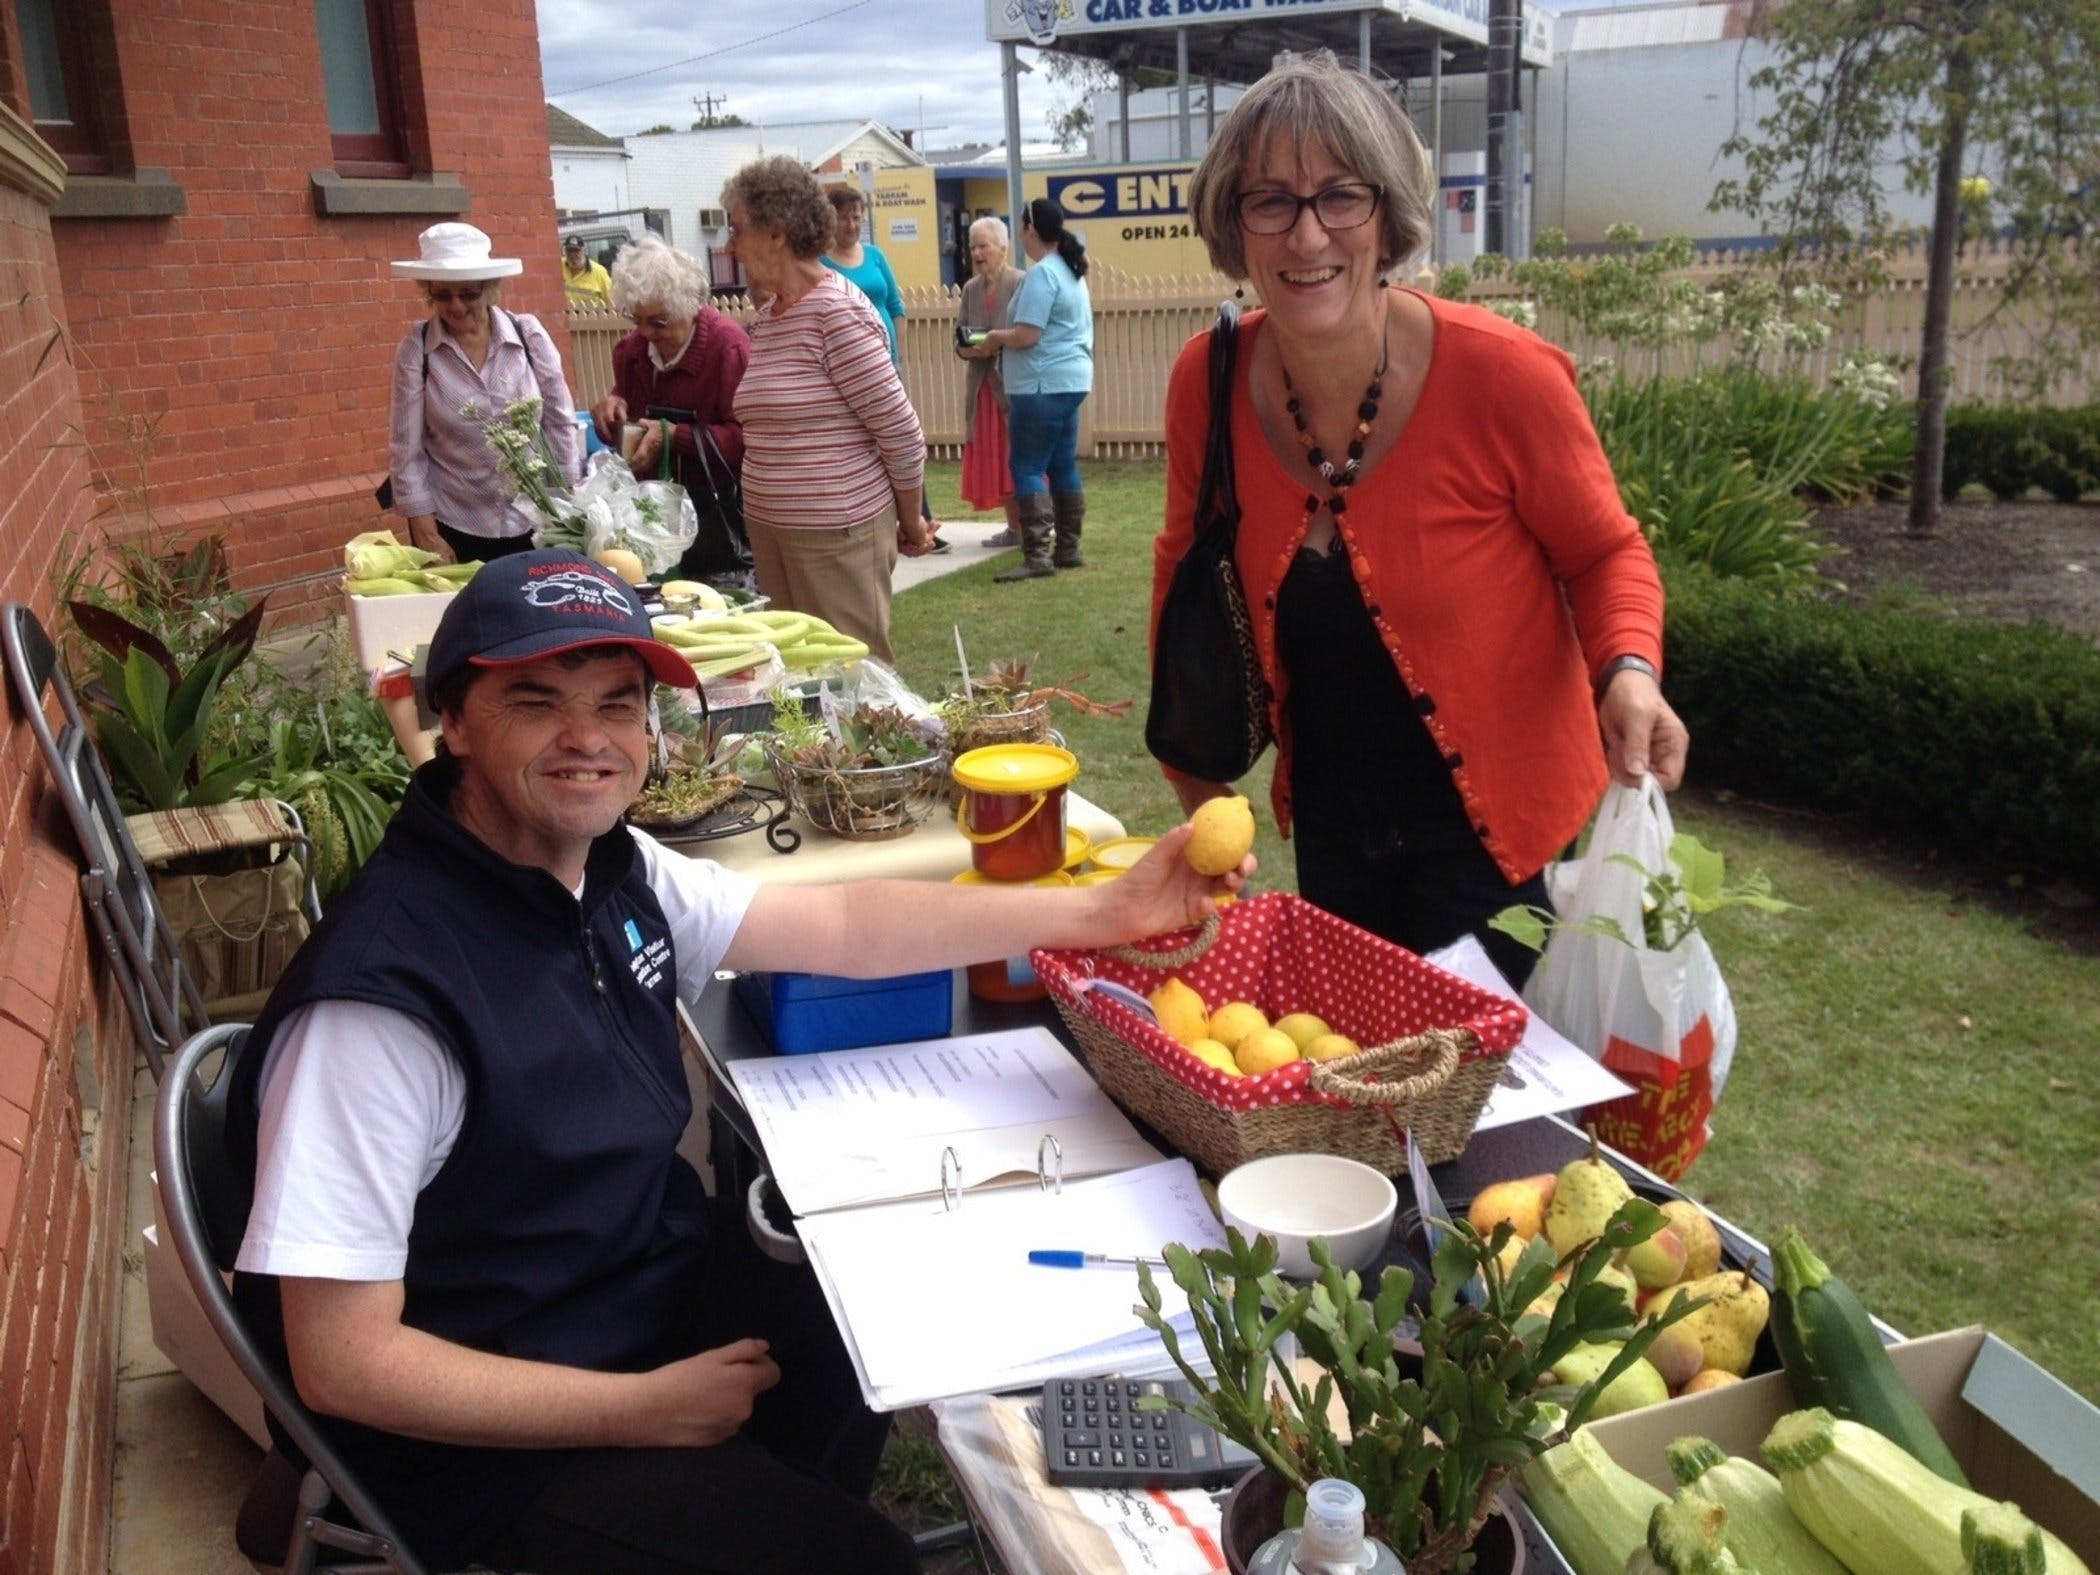 Yarram Courthouse Garden Produce Market - Redcliffe Tourism